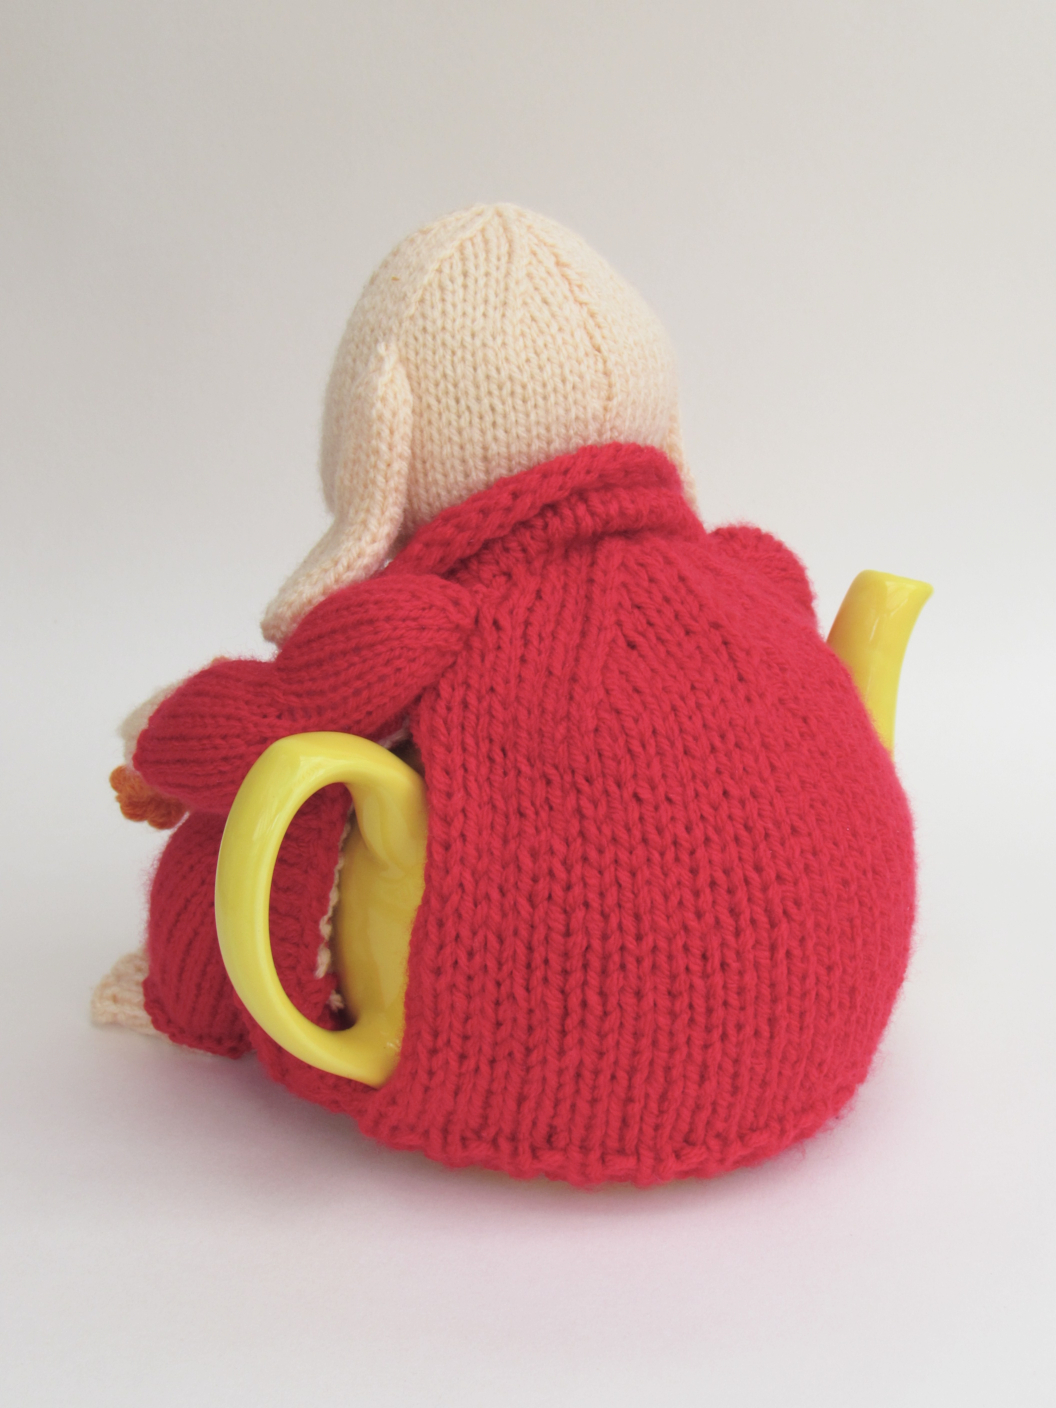 Laughing Happy Buddha tea cosy Knitting Pattern to knit your own Happy Buddha